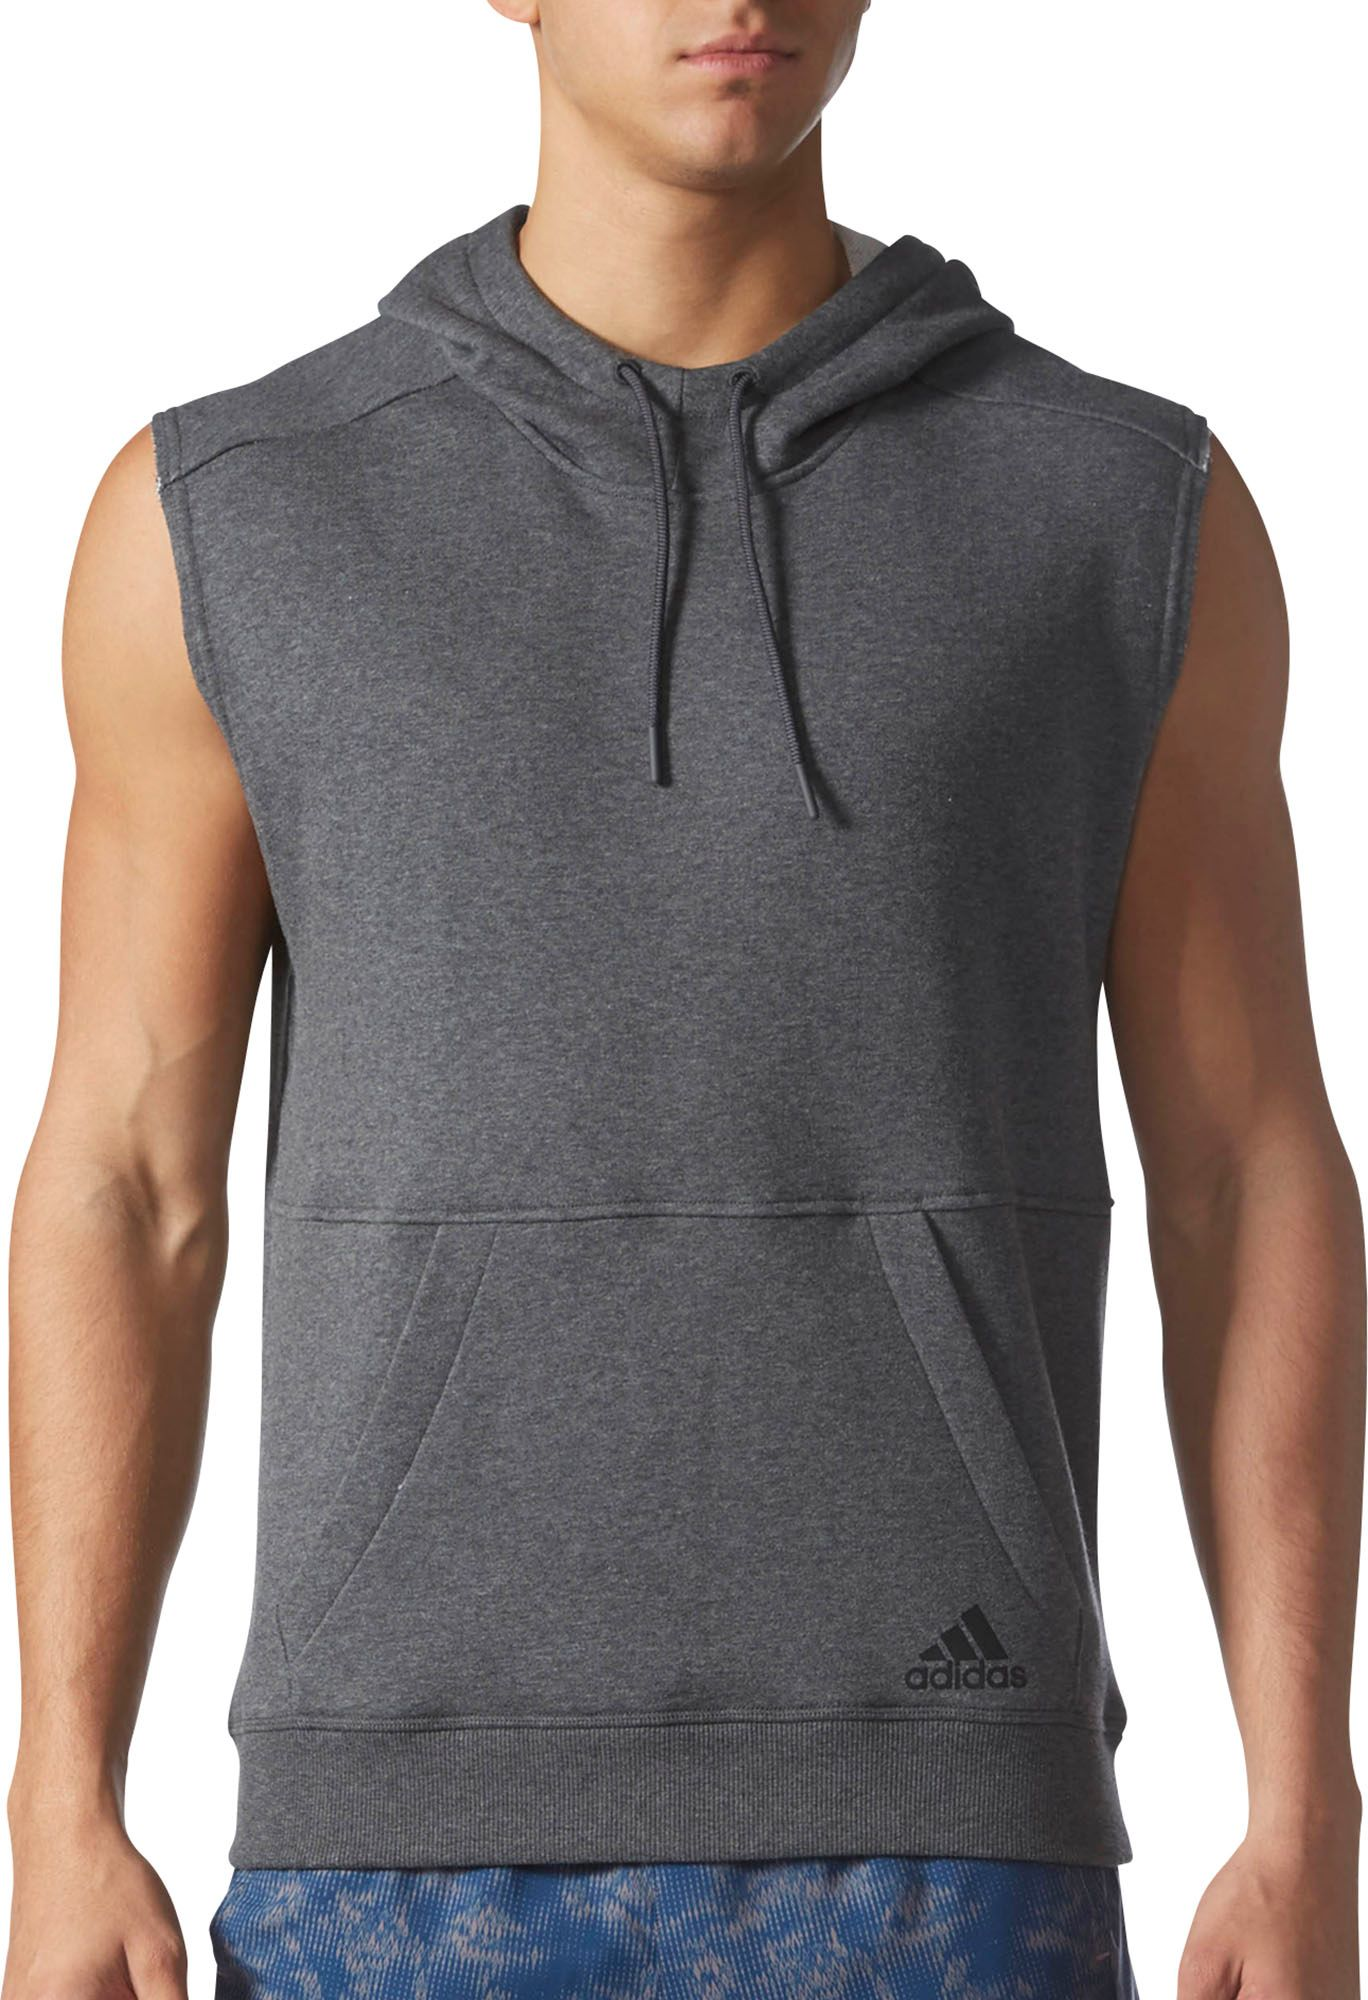 Men's Sleeveless Hoodies | DICK'S Sporting Goods